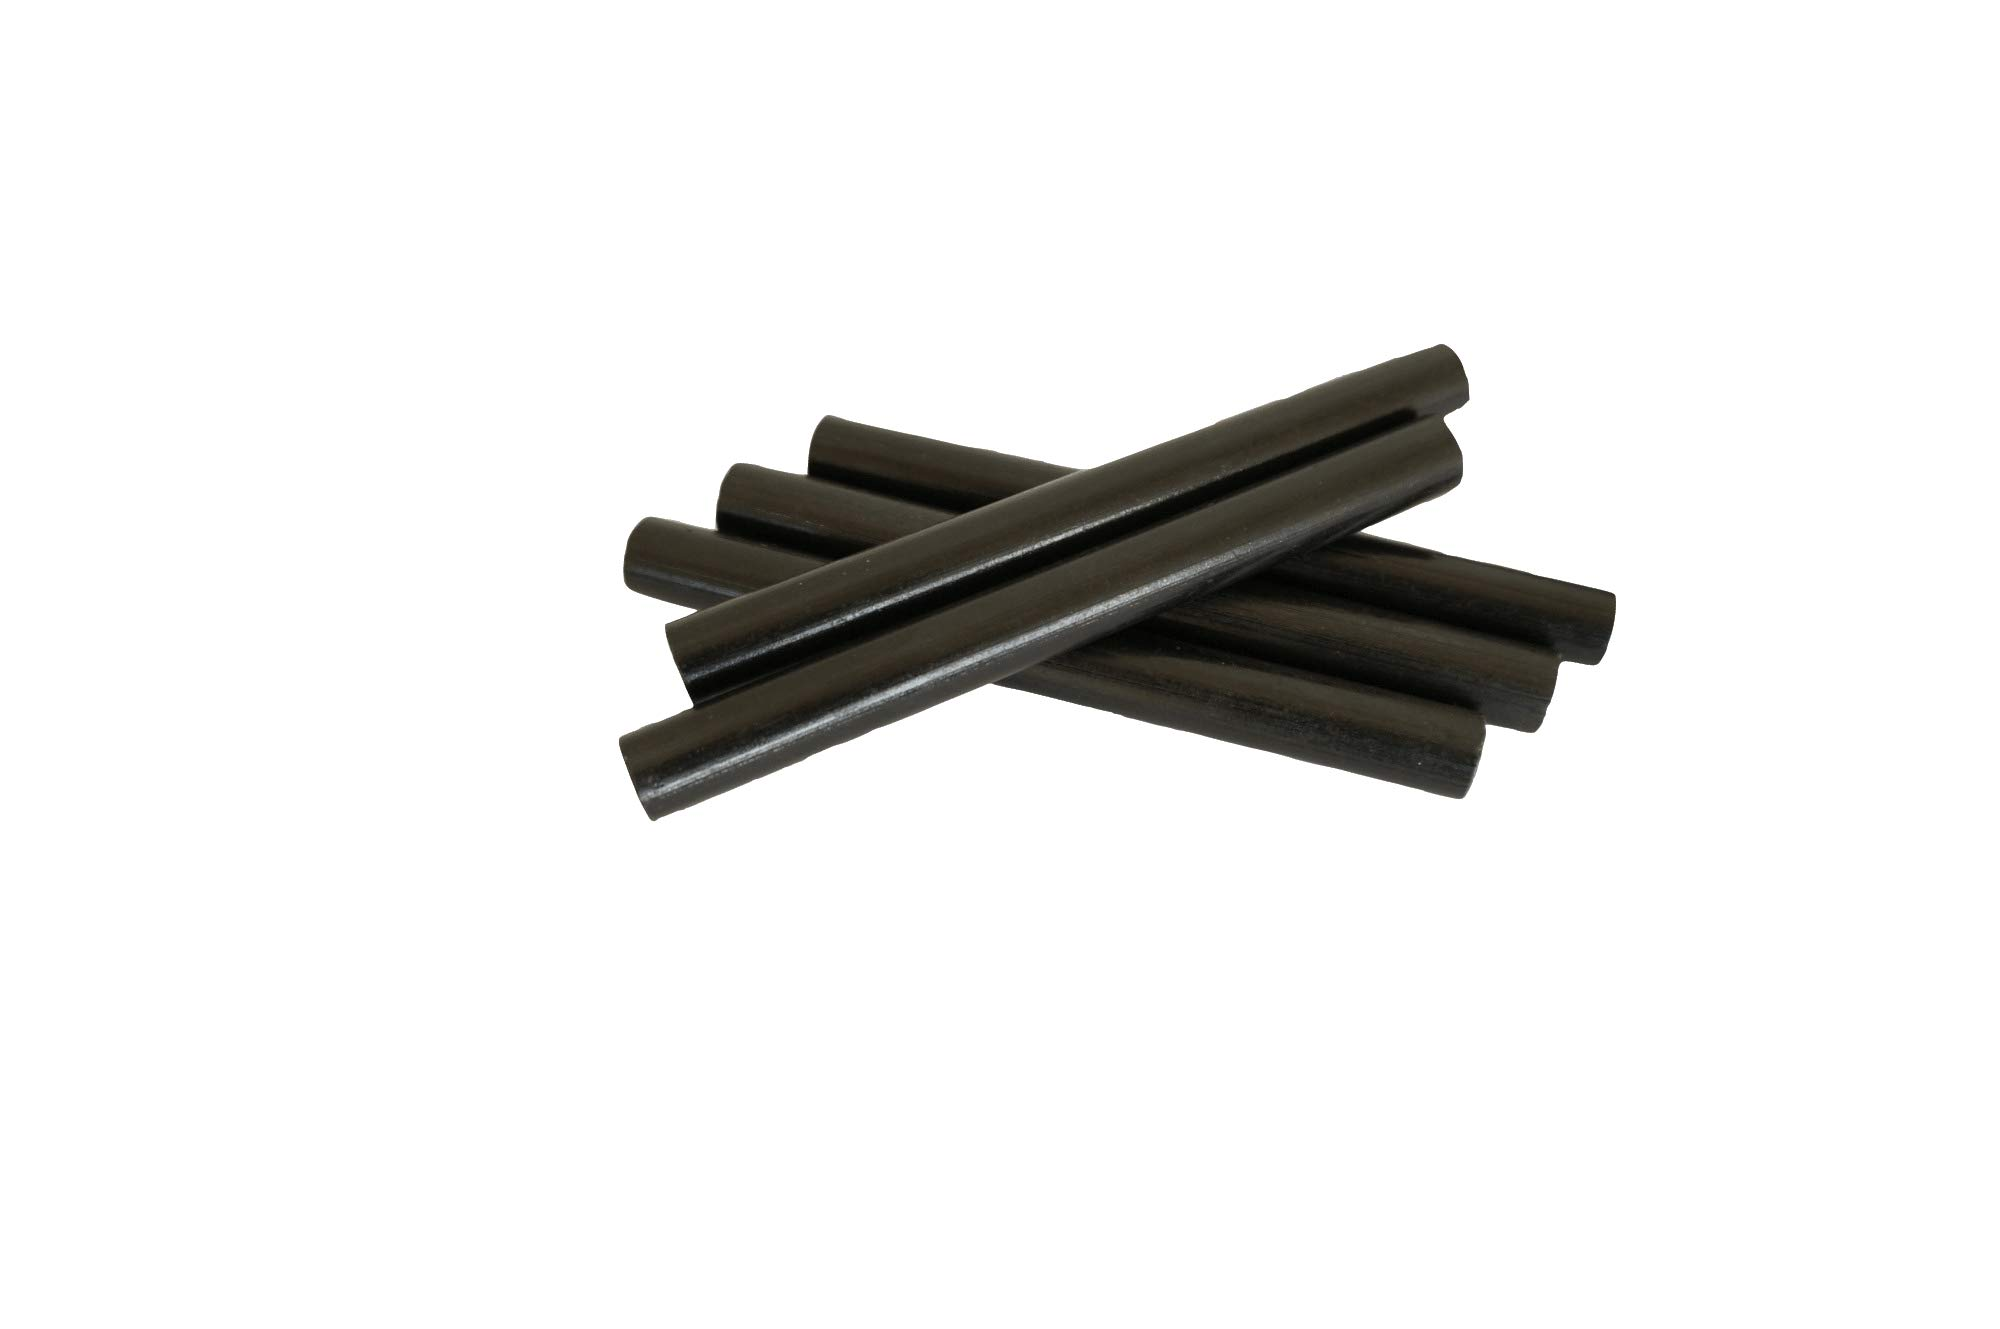 FERROFIRE Ferro Rod | Ø1/2 x 5 inch Survival Fire Starter, Flint Steel, Ferrocerium Rod (Pack of 5)